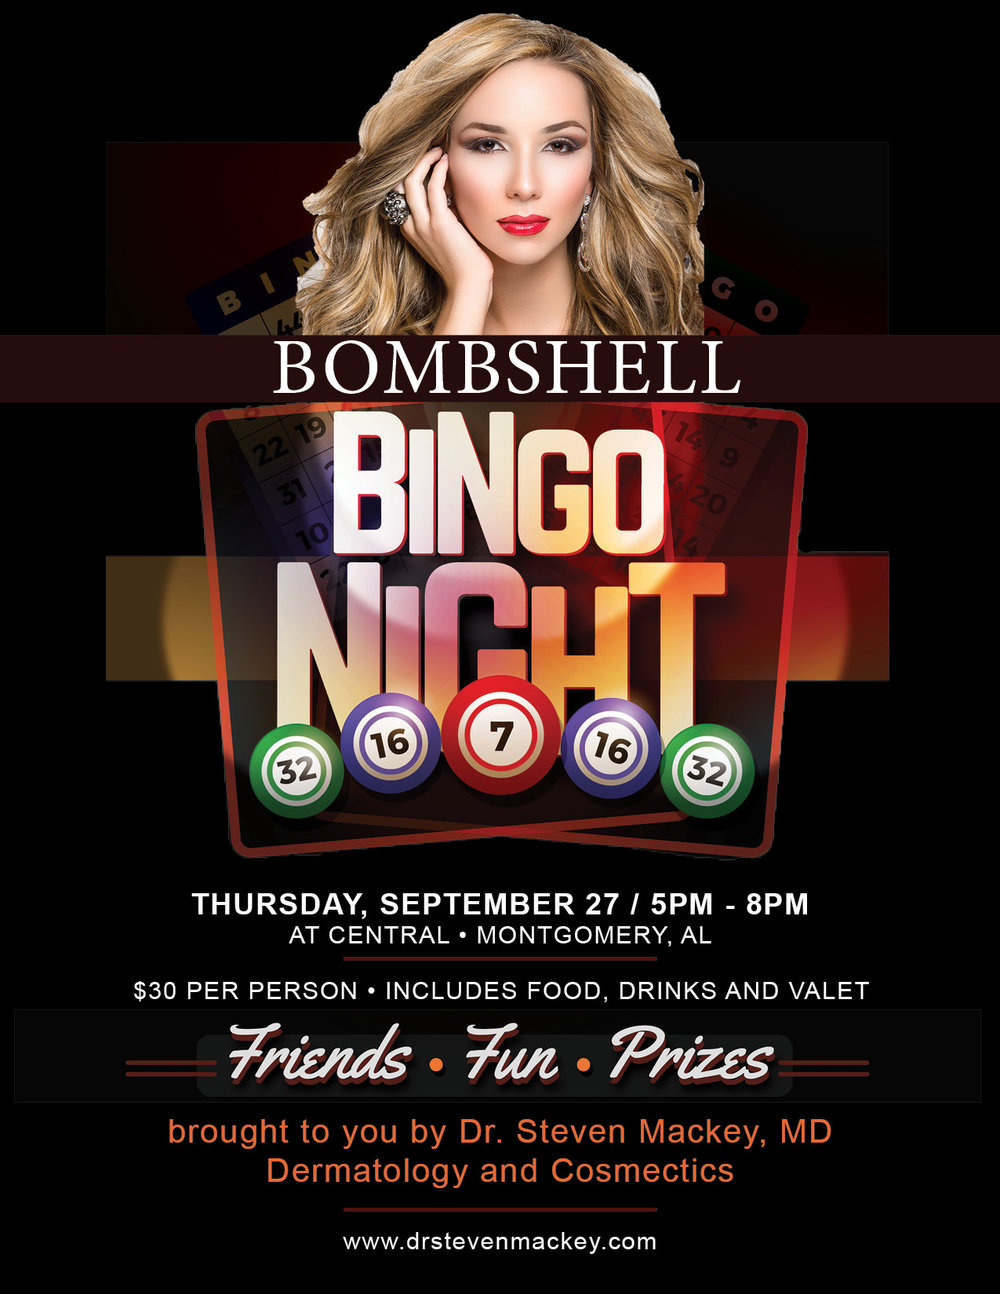 MAC Bingo flyer.jpg